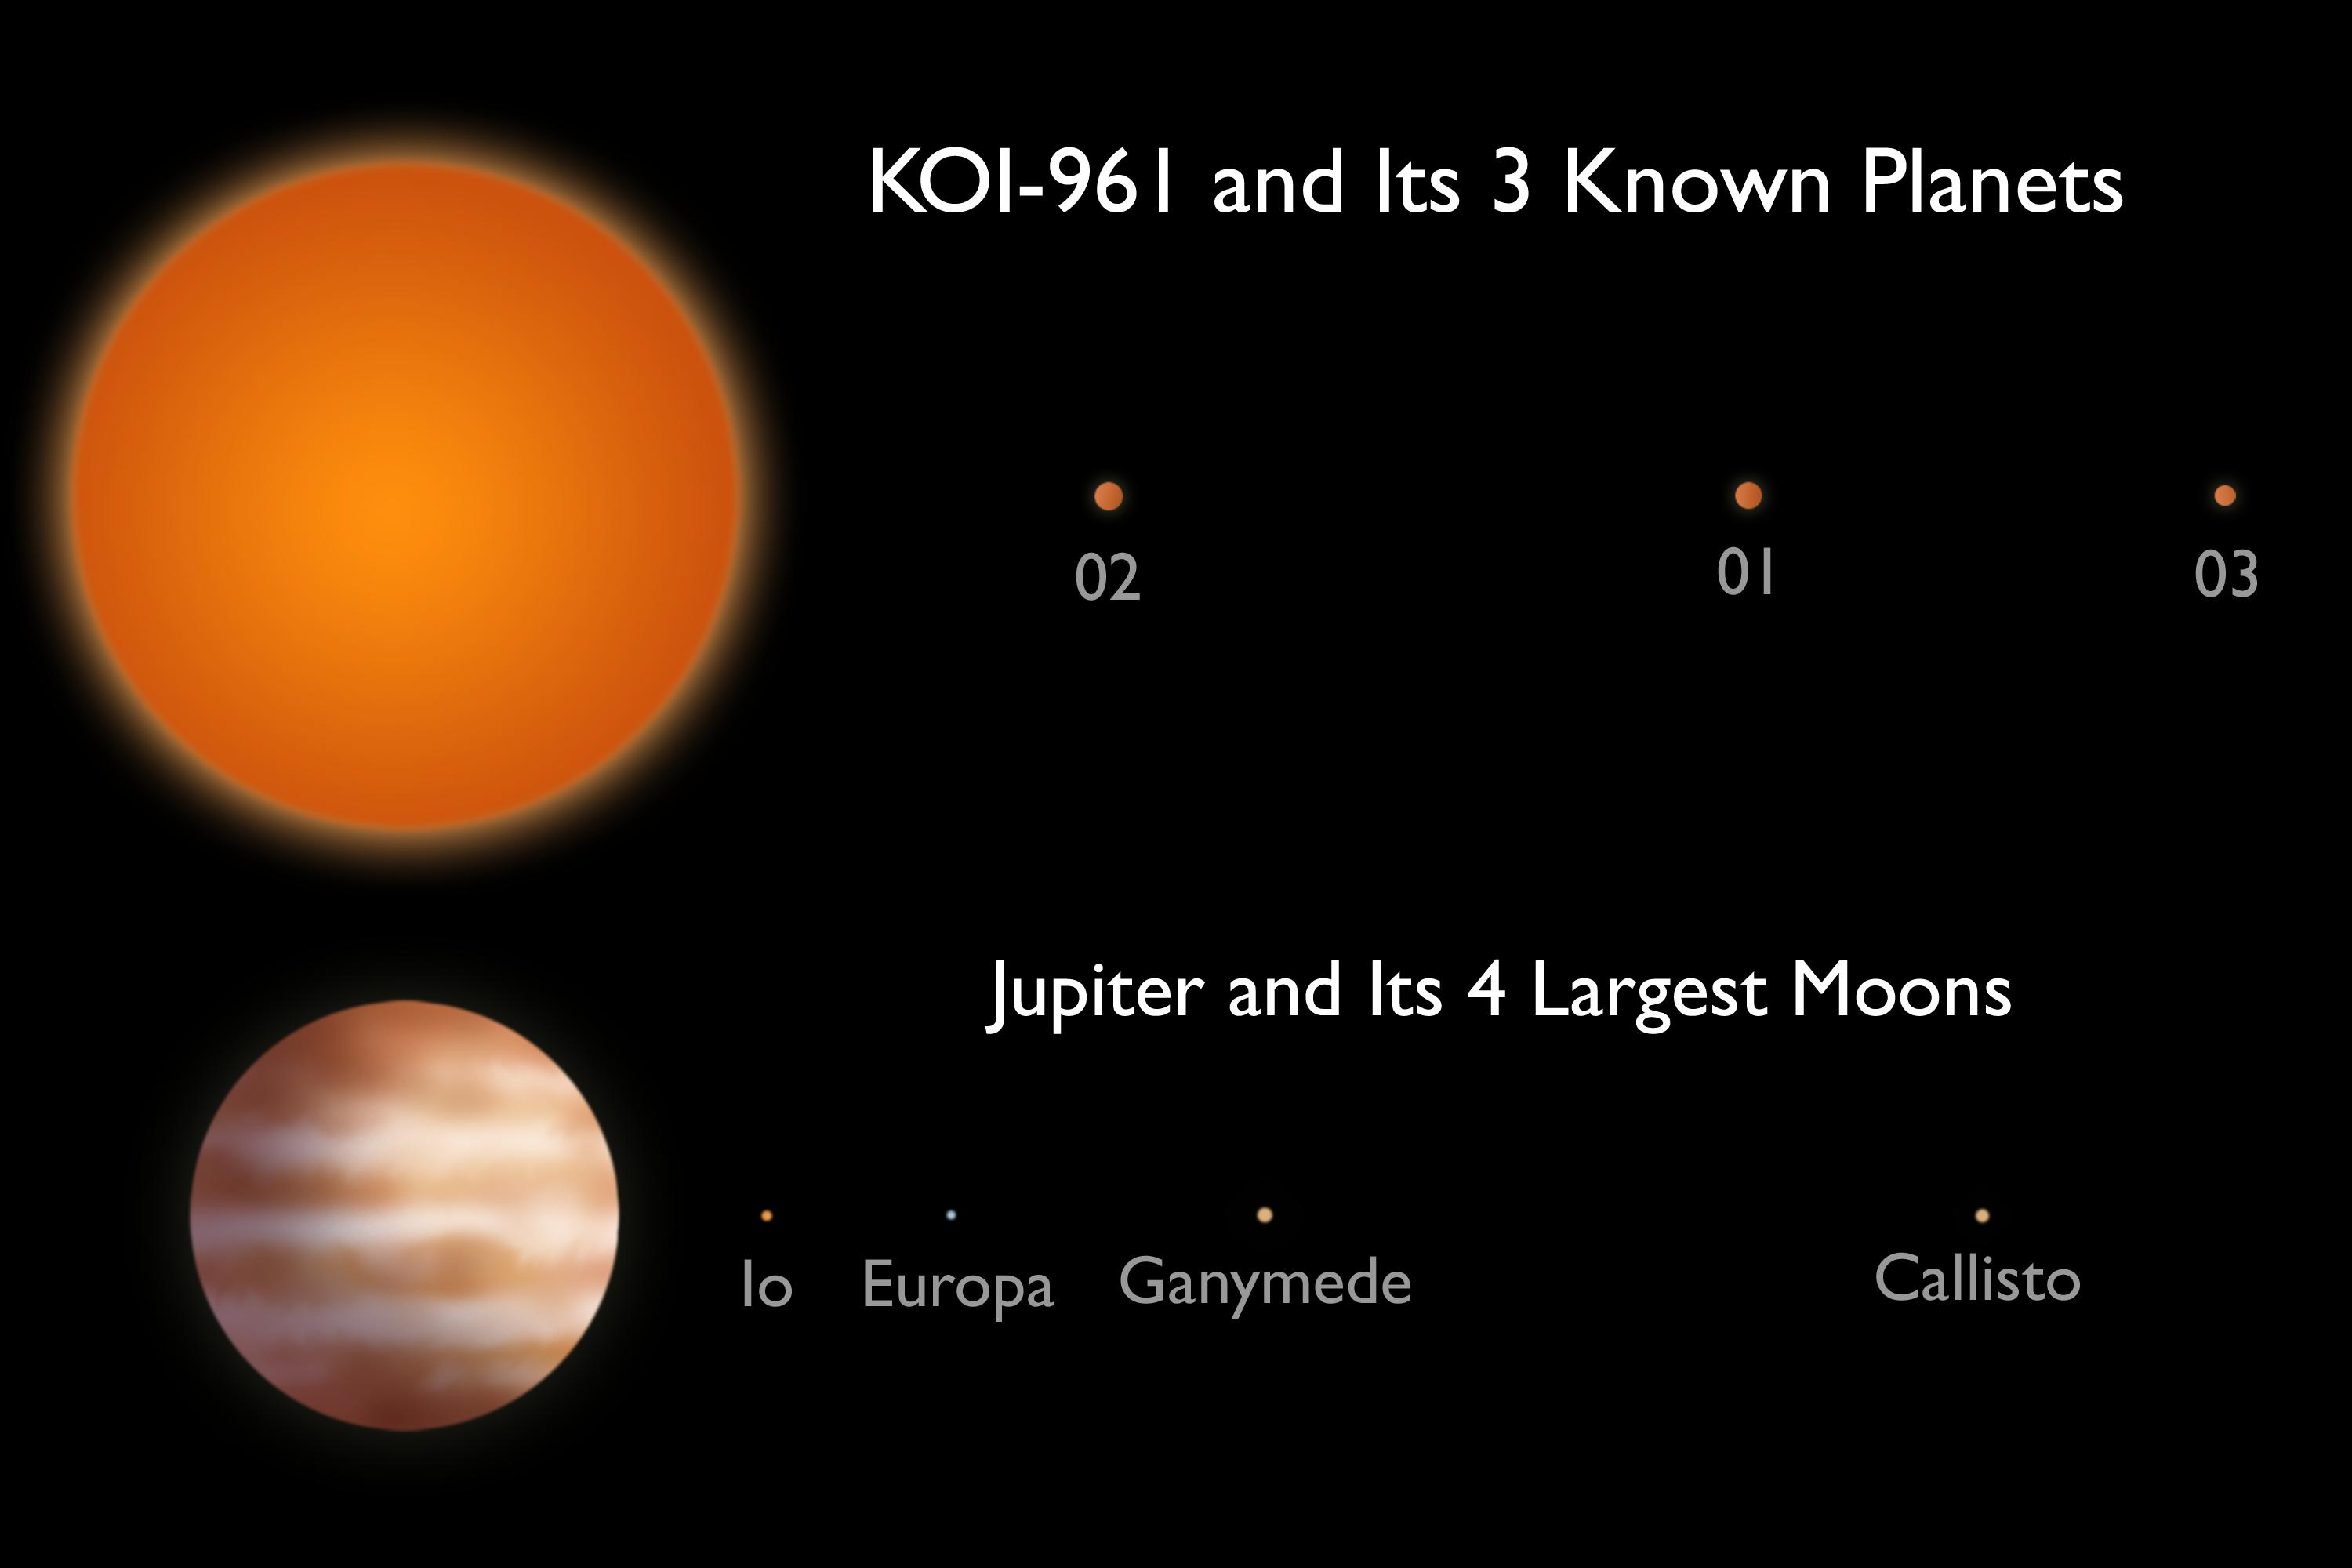 Kepler Archives Bad Astronomy Free Illustration Solar System Orbit Diagram Digital They The Star Koi 961 Short For Object Of Interest And Were Observed By Observatory Details On How That All Works Can Be Found